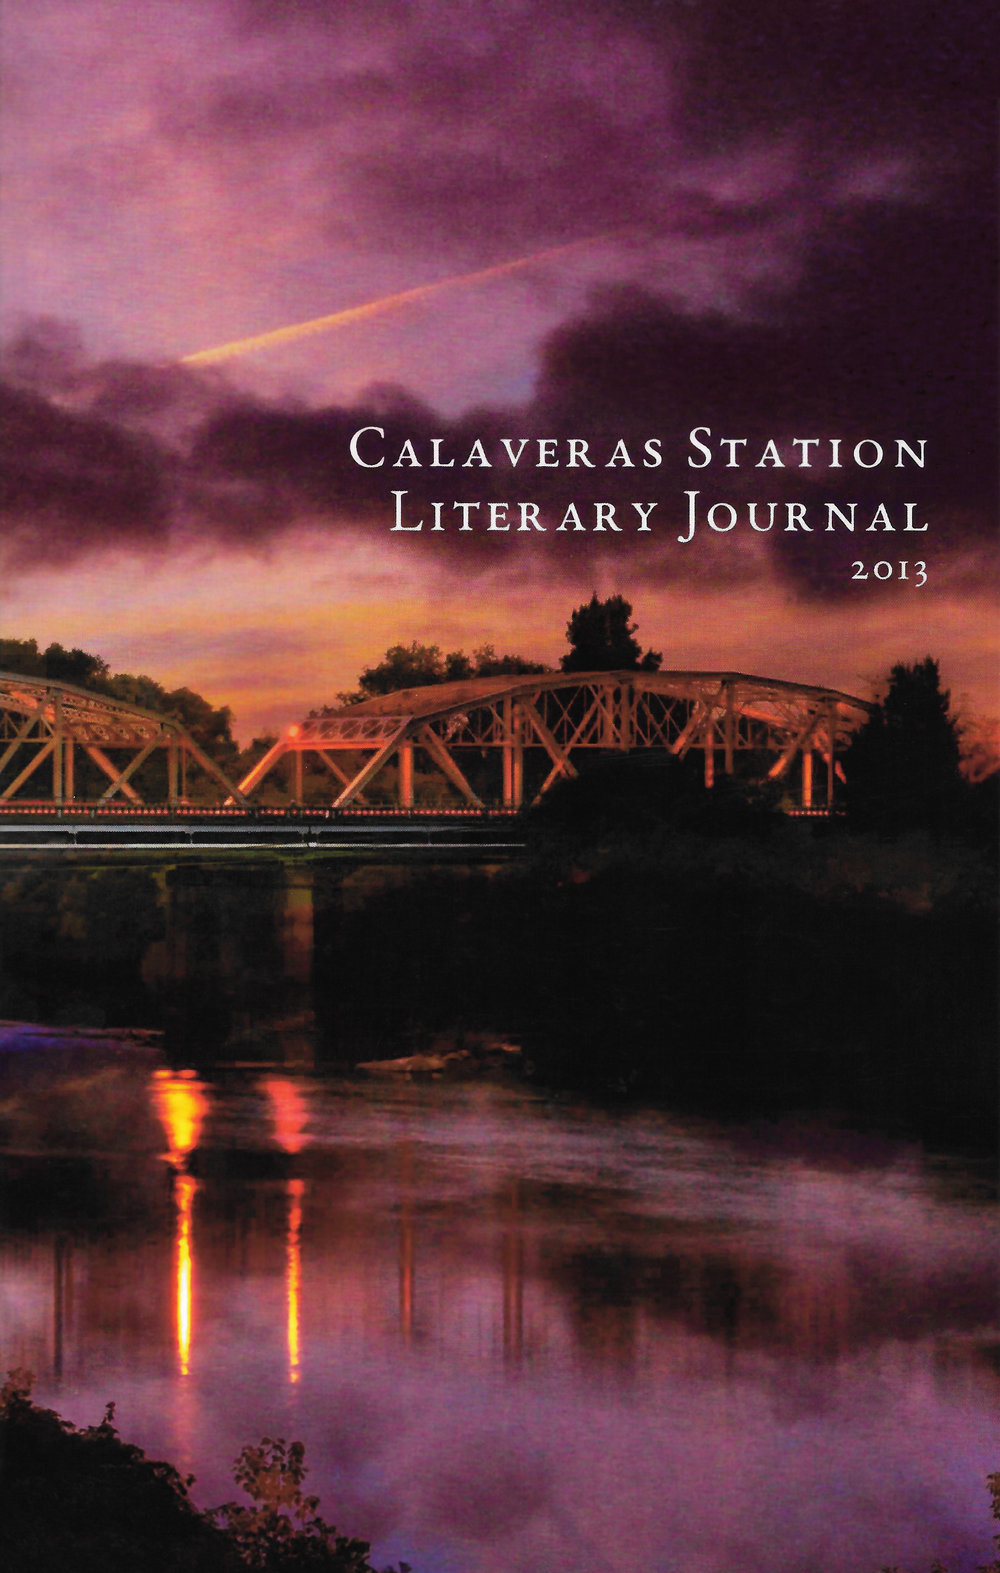 Calaveras Station Literary Journal cover, 2013